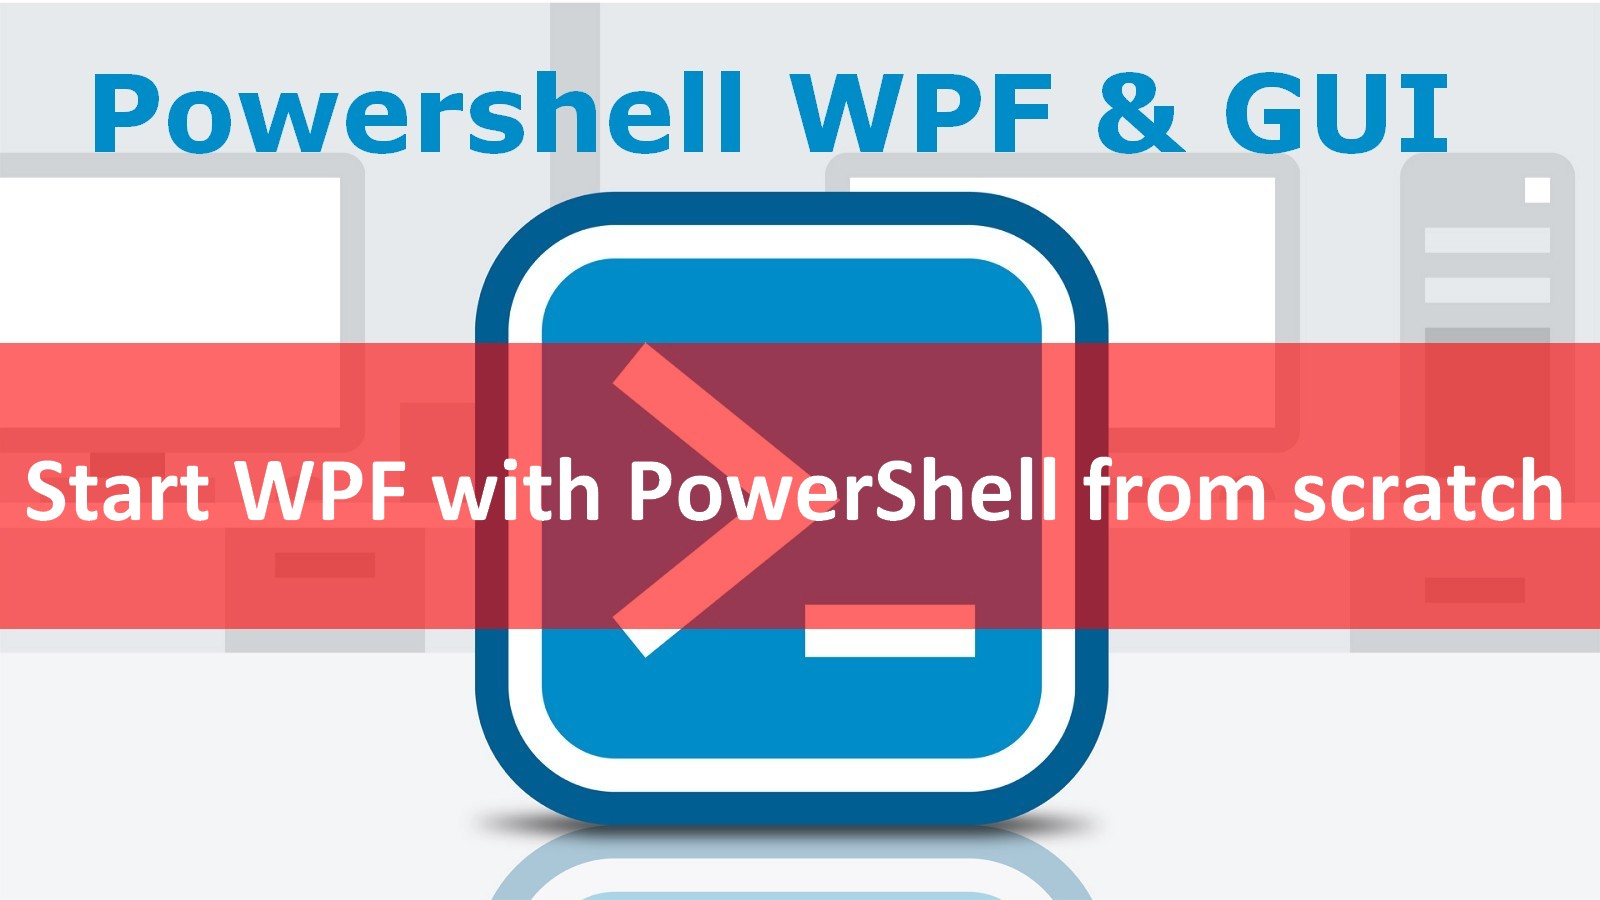 Starts WPF with PowerShell from scratch - Part 1